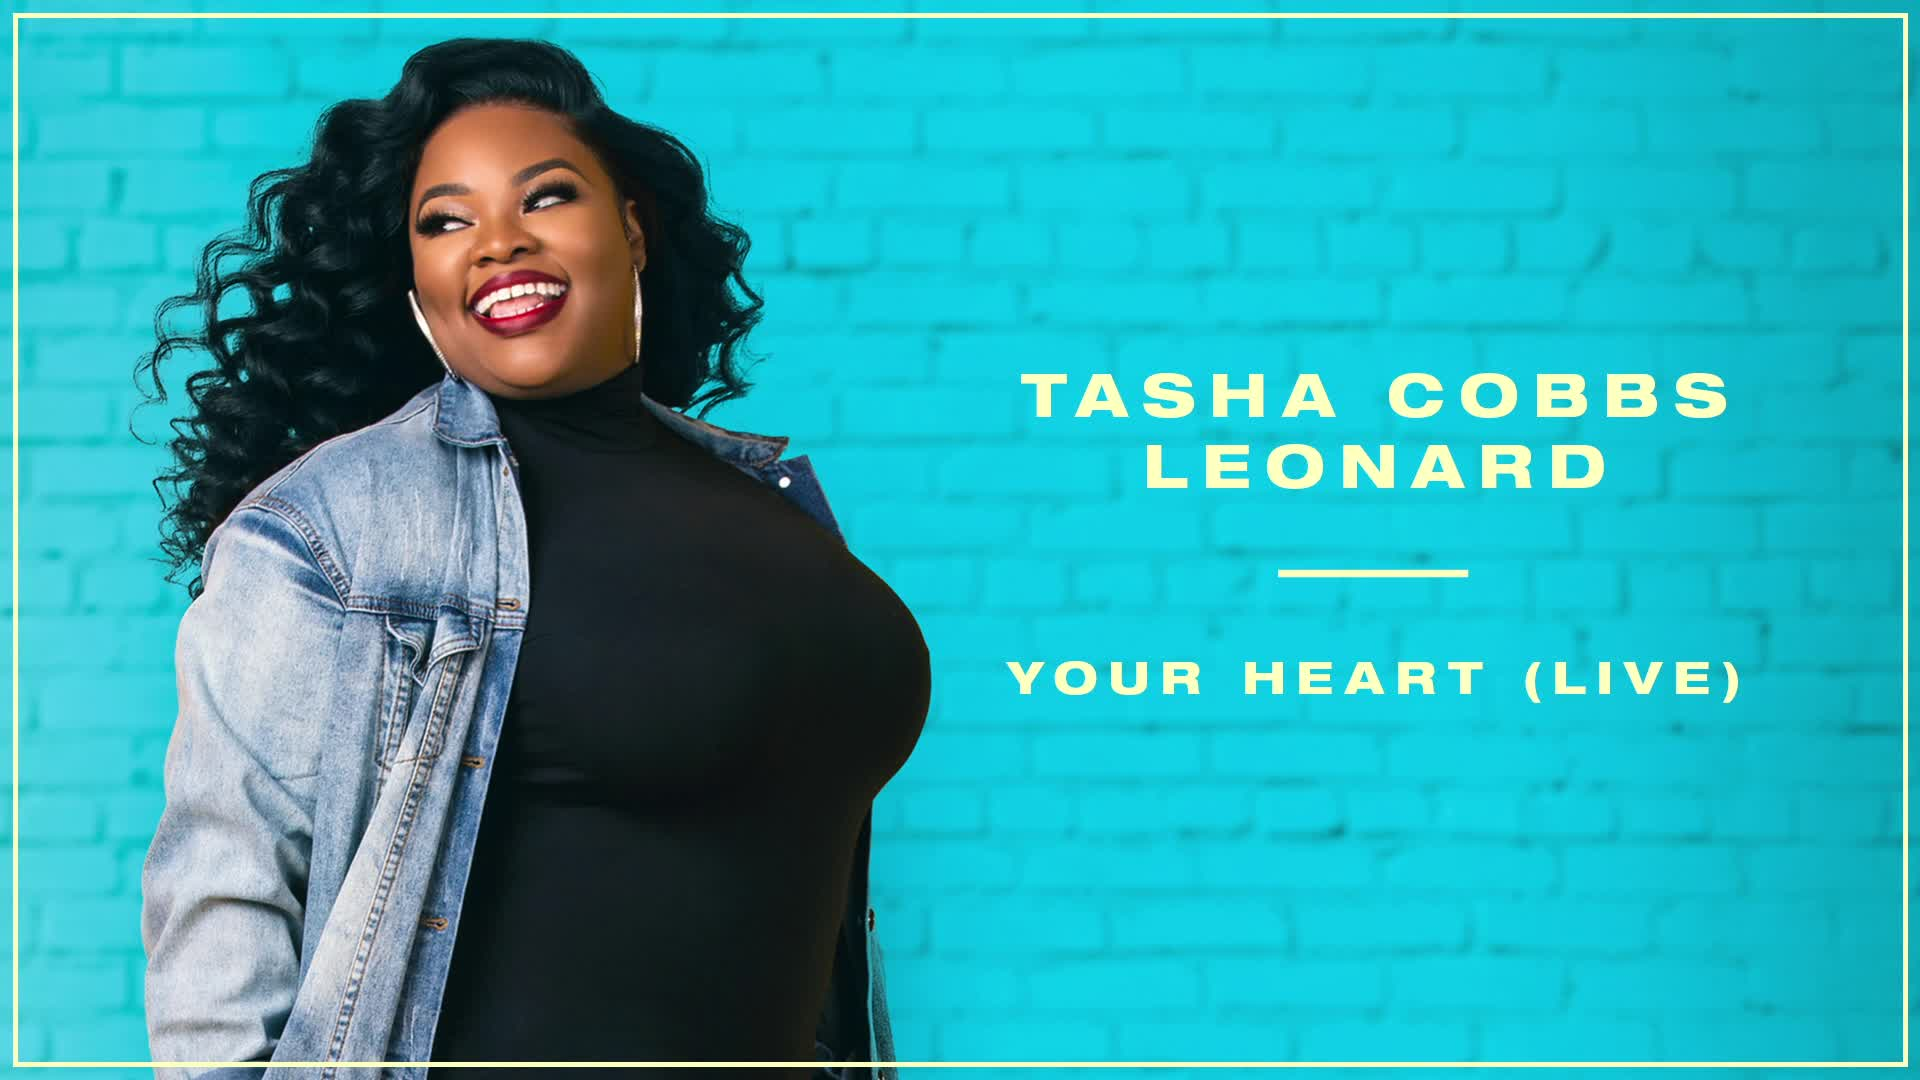 Tasha Cobbs Leonard - Your Heart